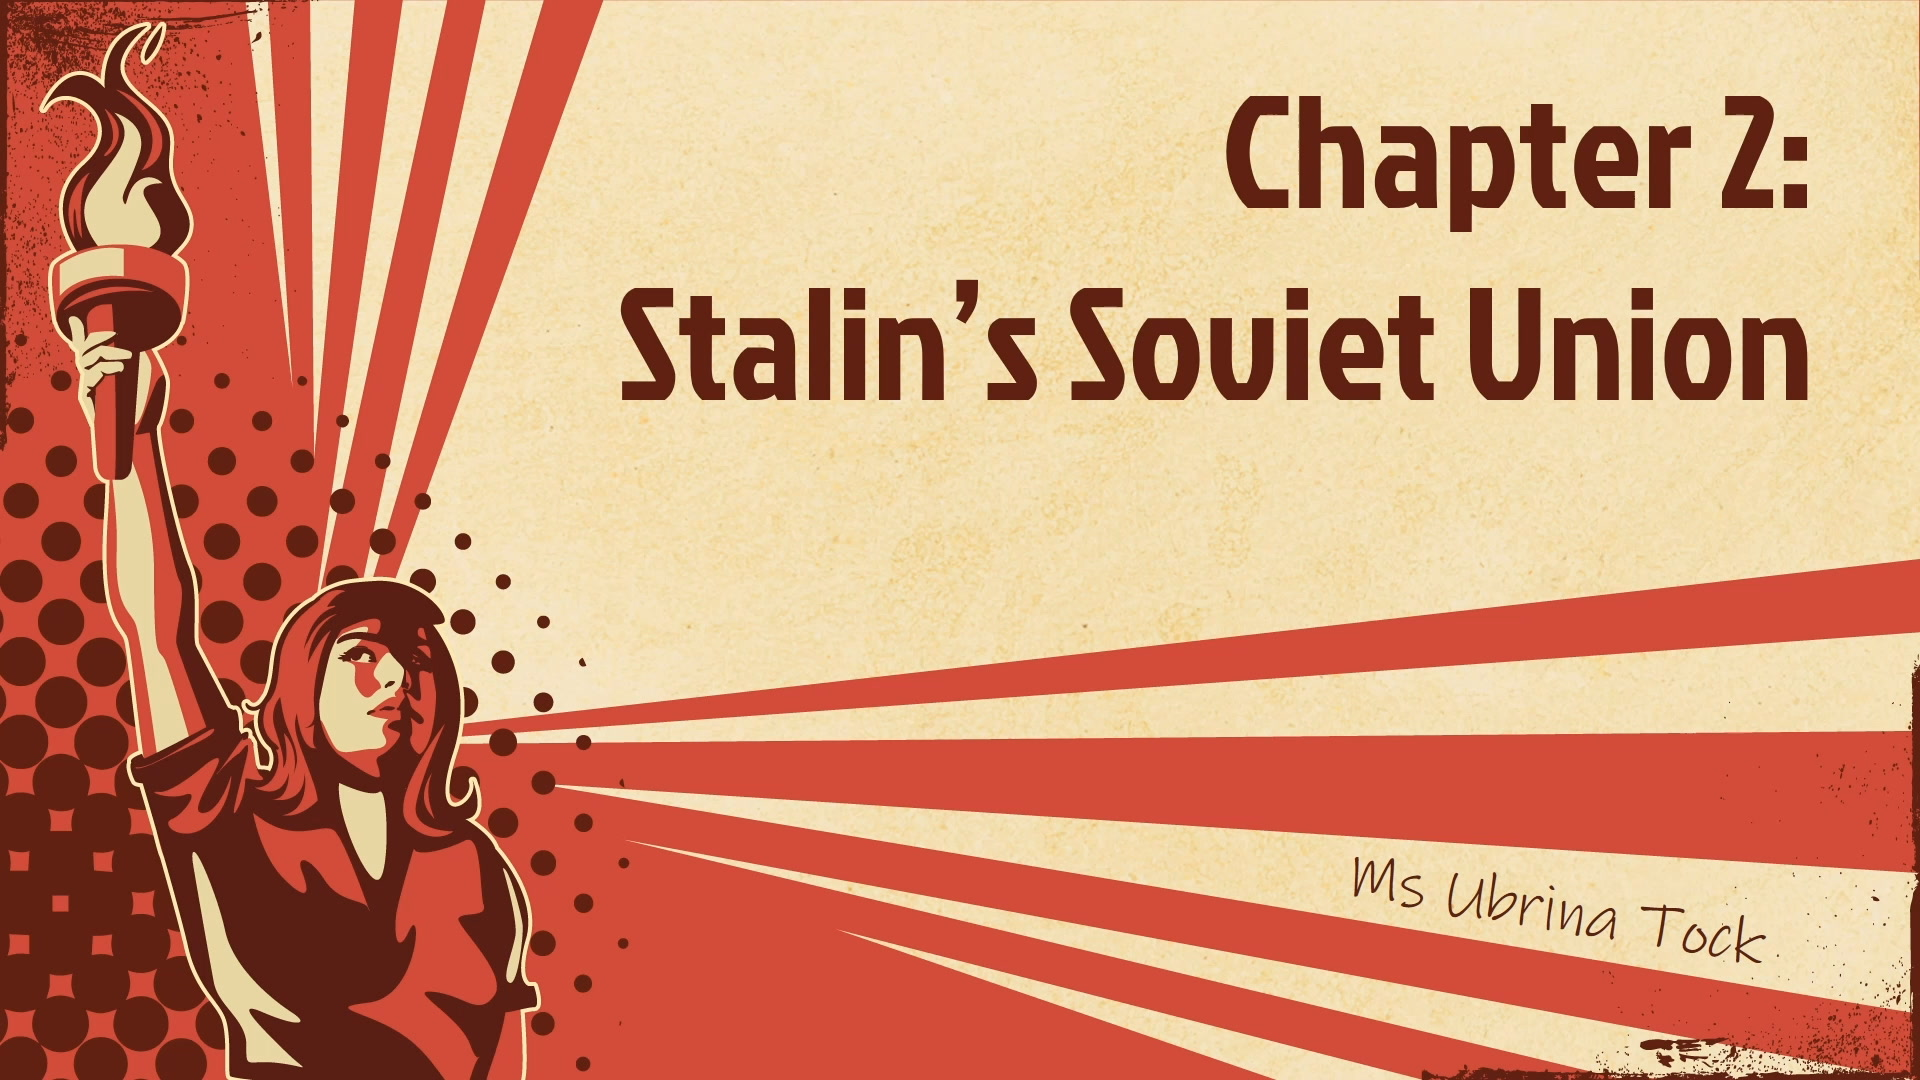 Secondary 3 History Chapter 2 - Stalin's Soviet Union